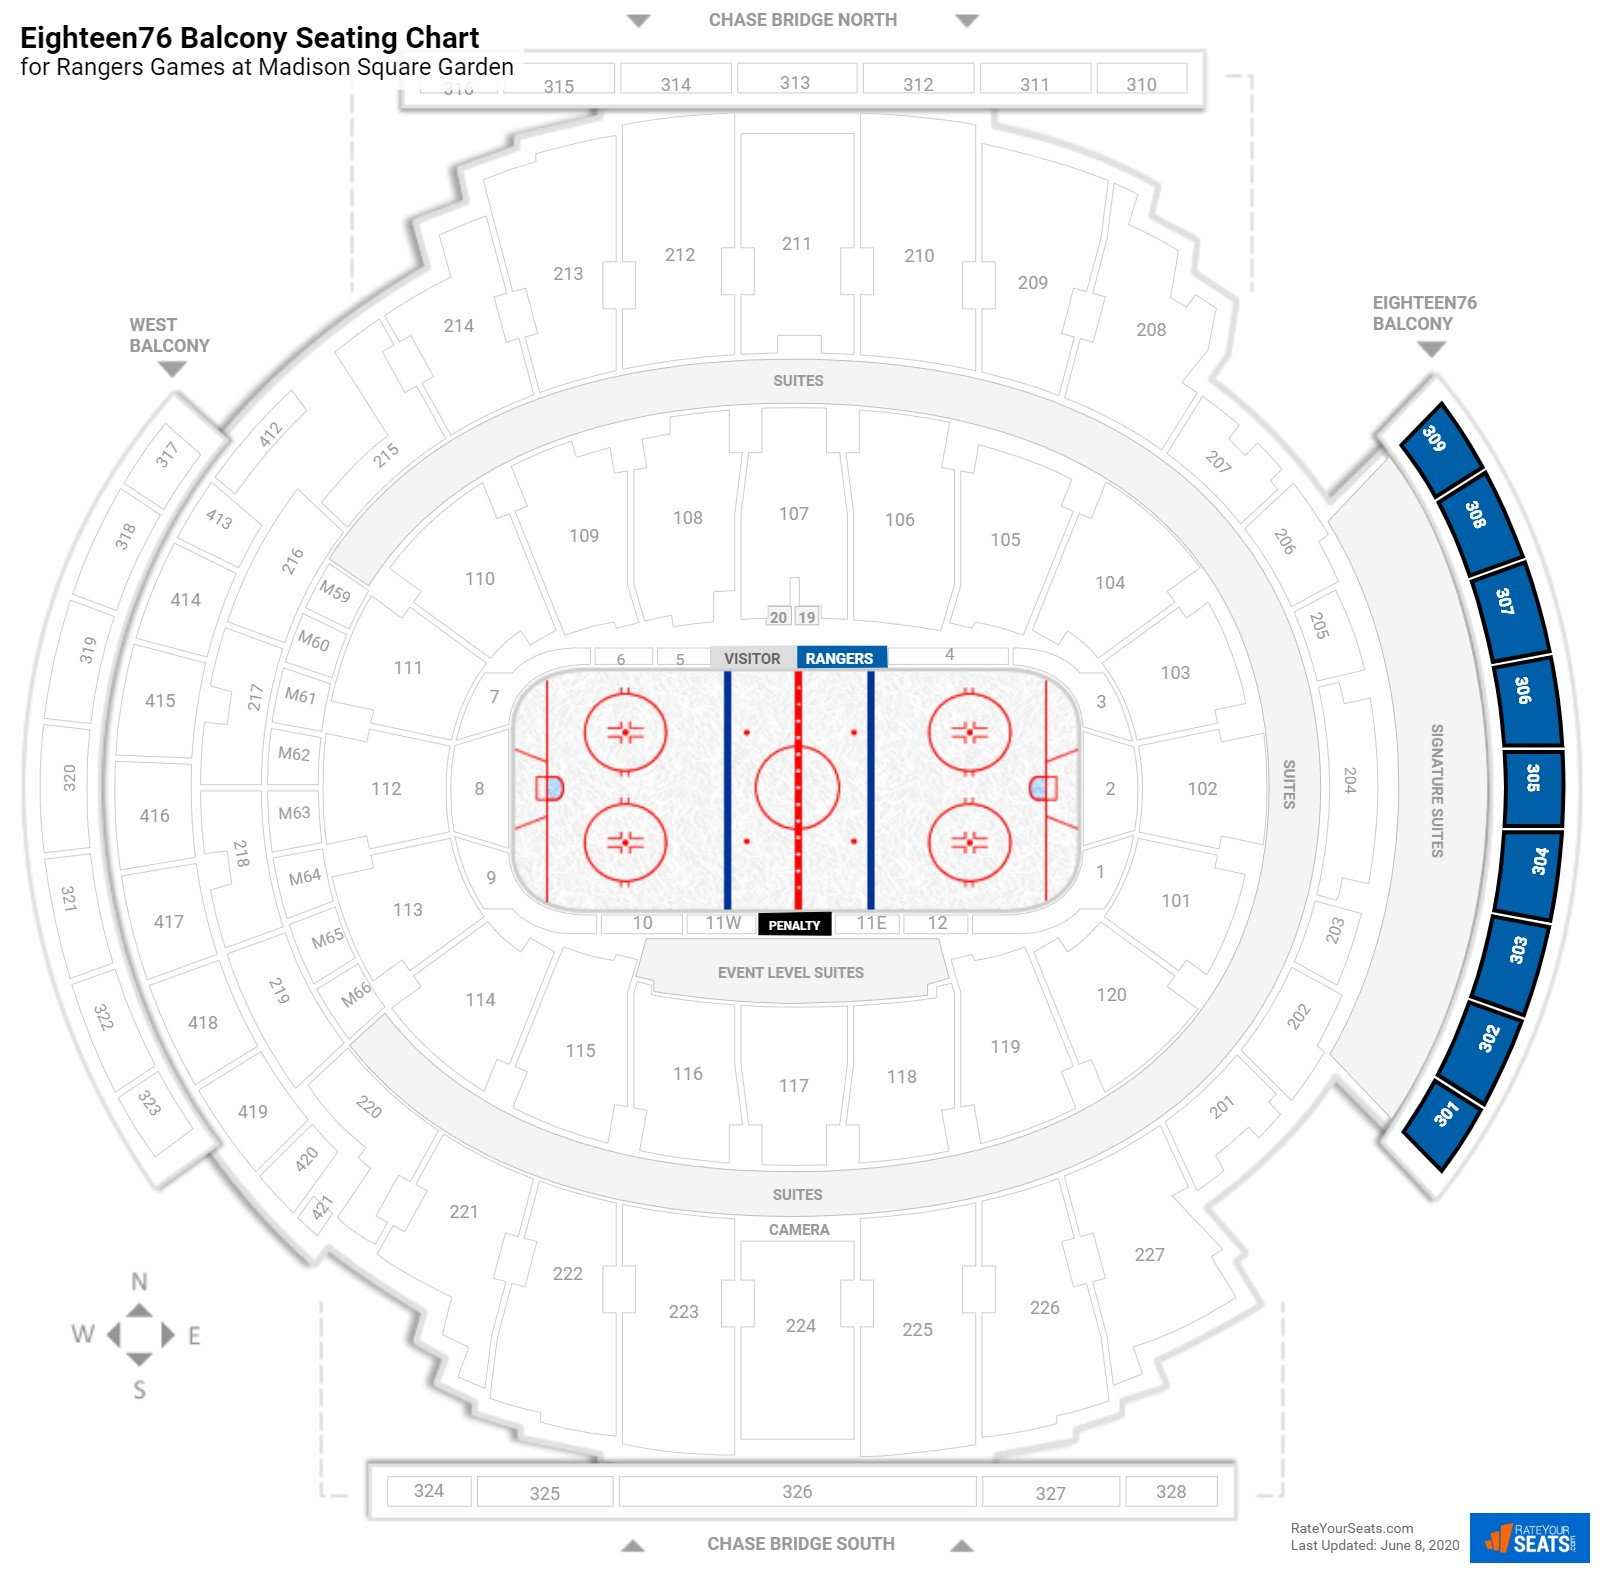 Madison Square Garden Eighteen76 Balcony seating chart